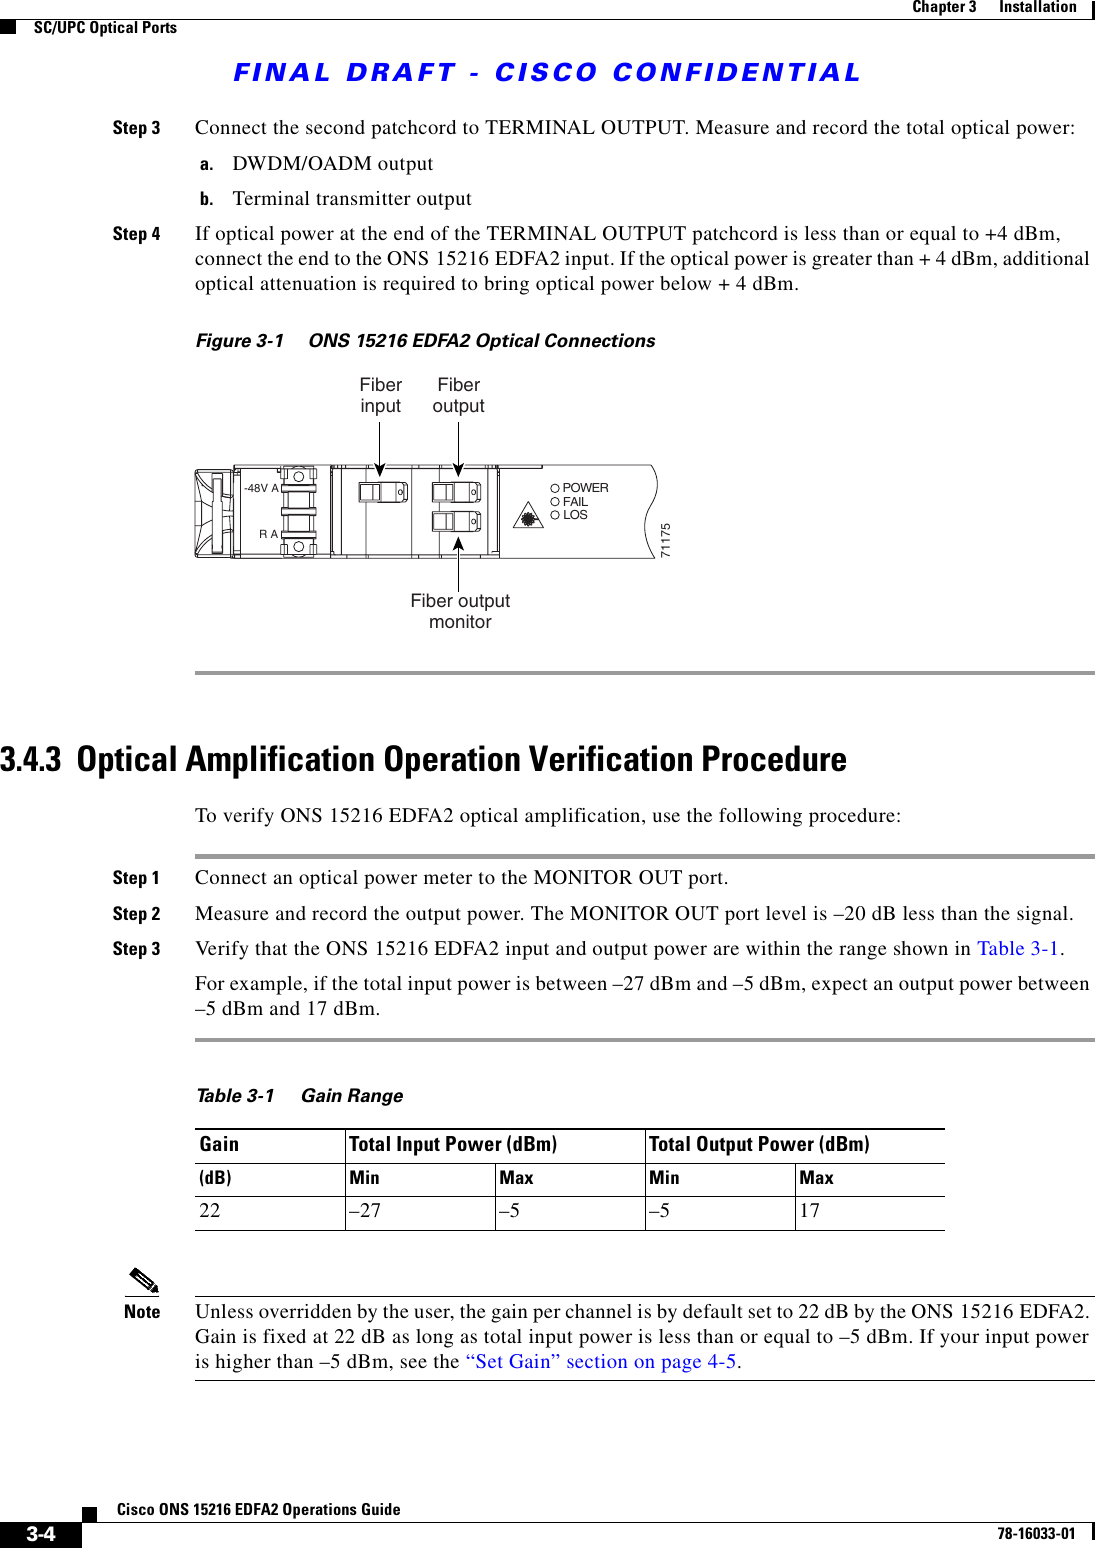 Cisco Systems Ons 15216 Edfa2 Operation Manual Operations Guide, R2 3